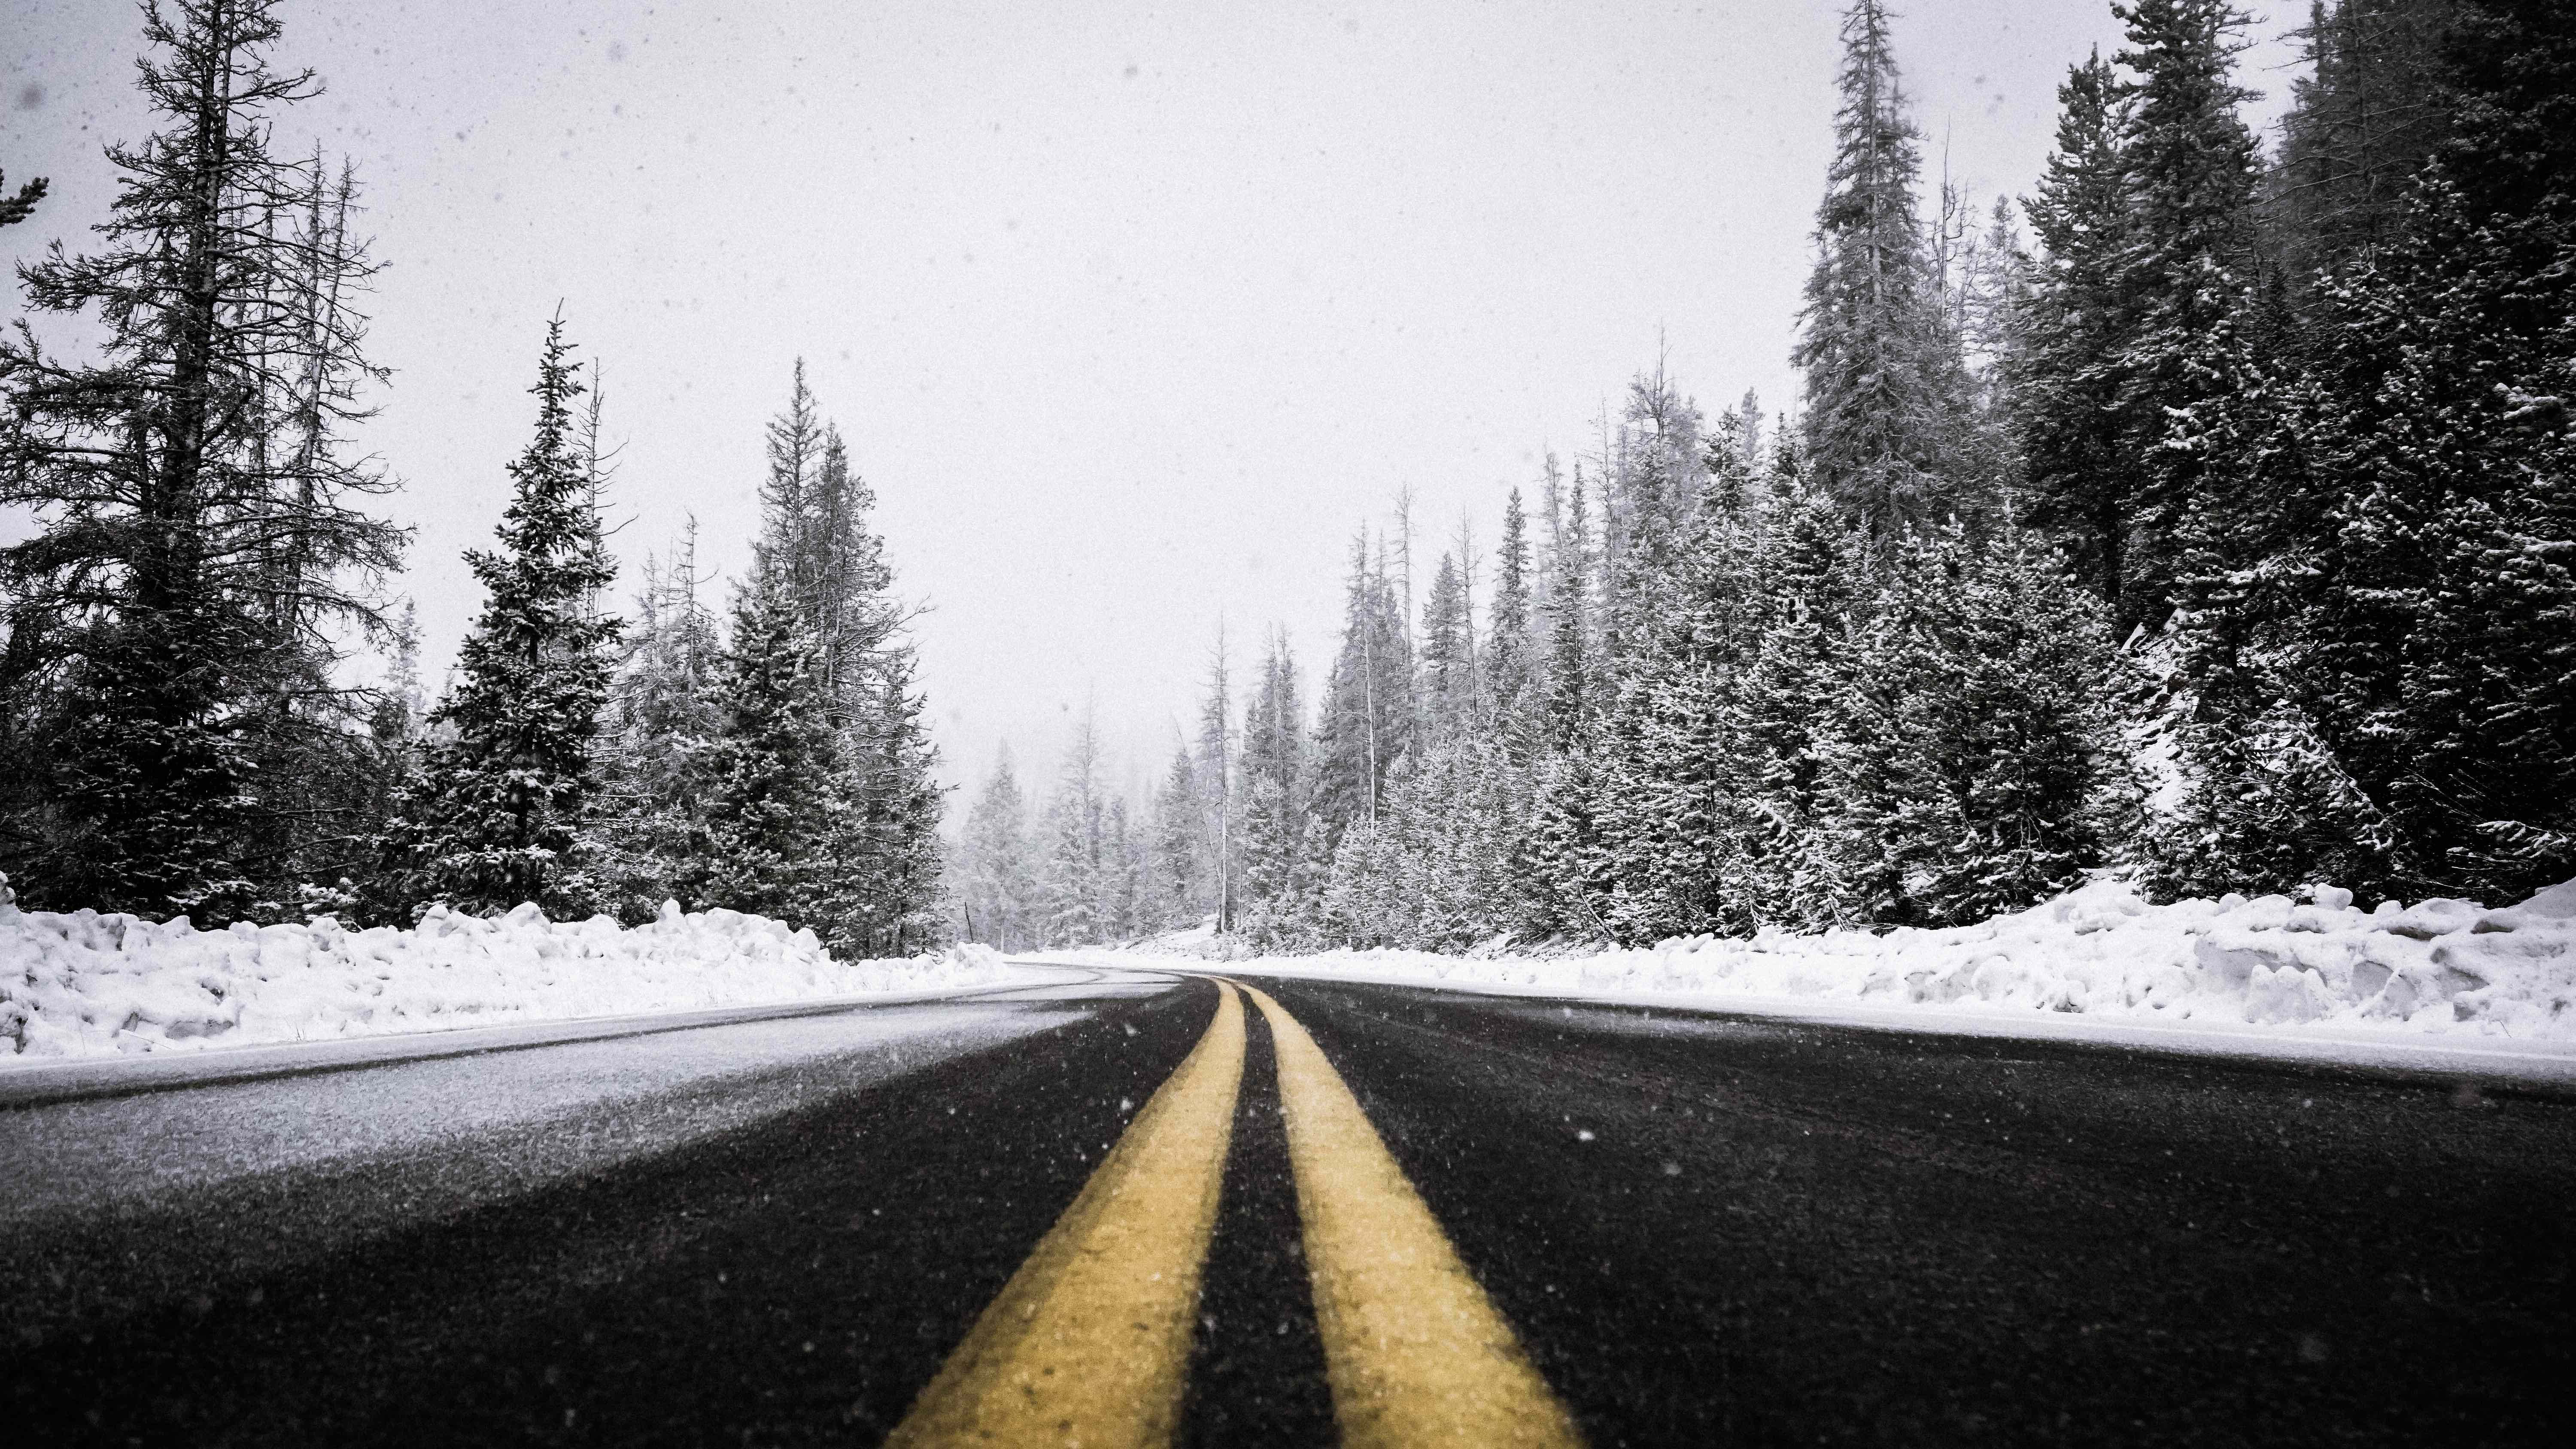 Photo of snowy road lined with trees